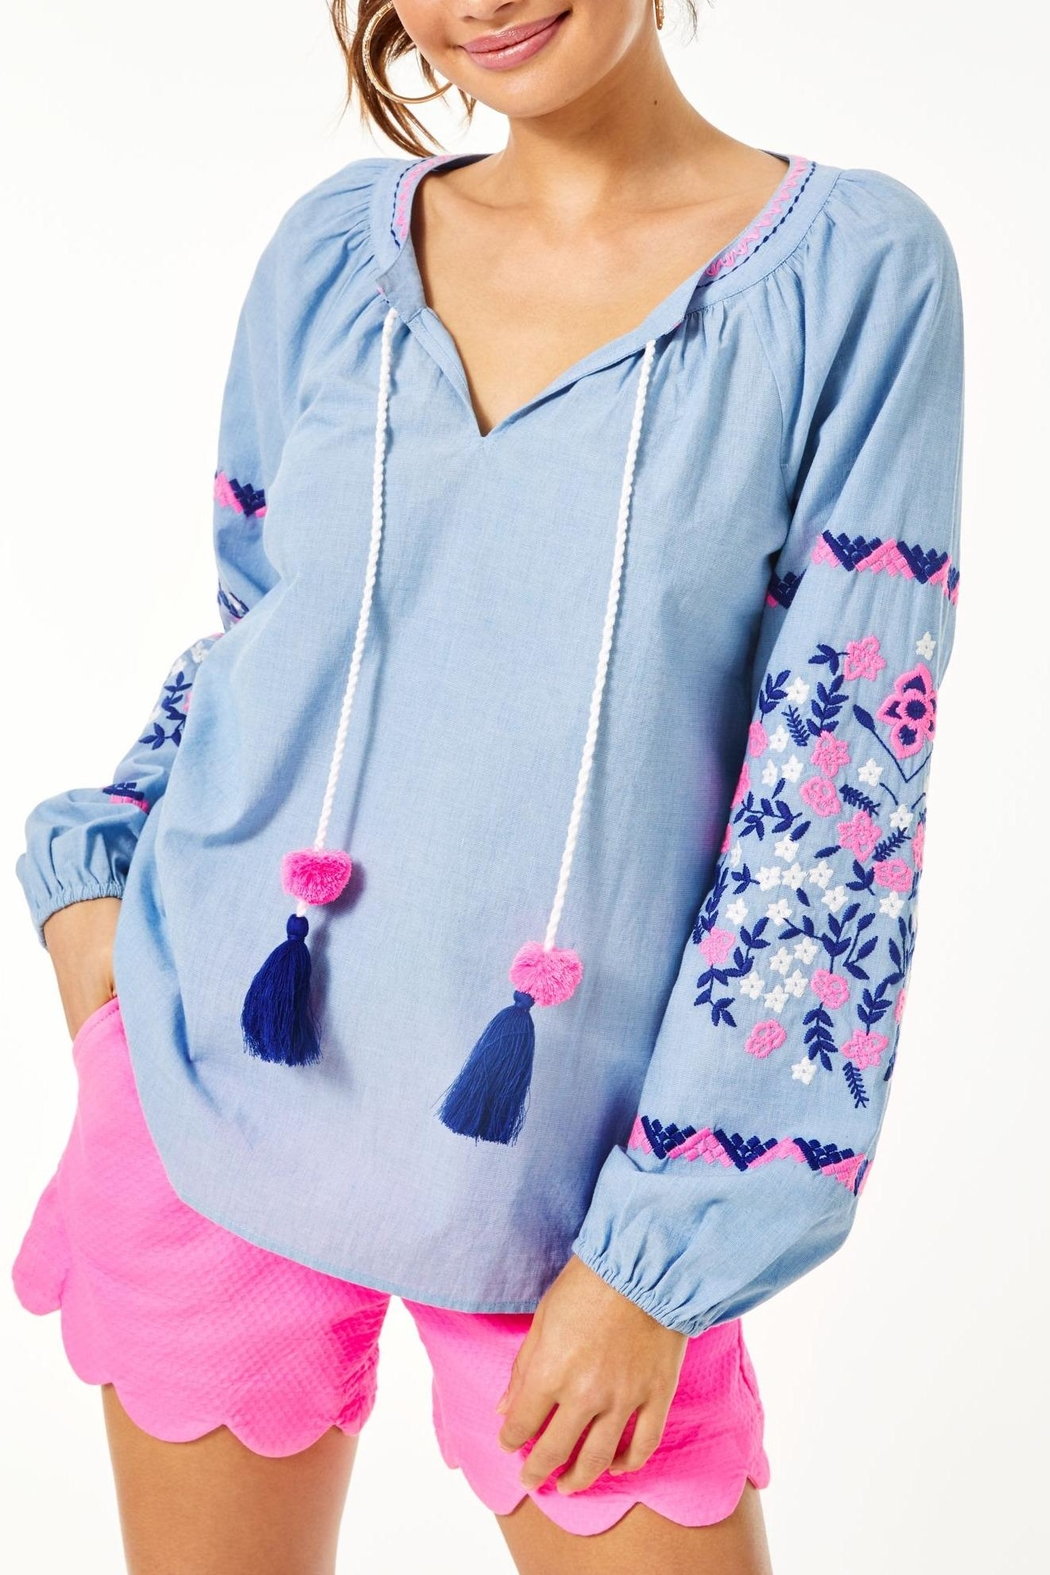 Lilly Pulitzer Keela Embroidered Top - Main Image